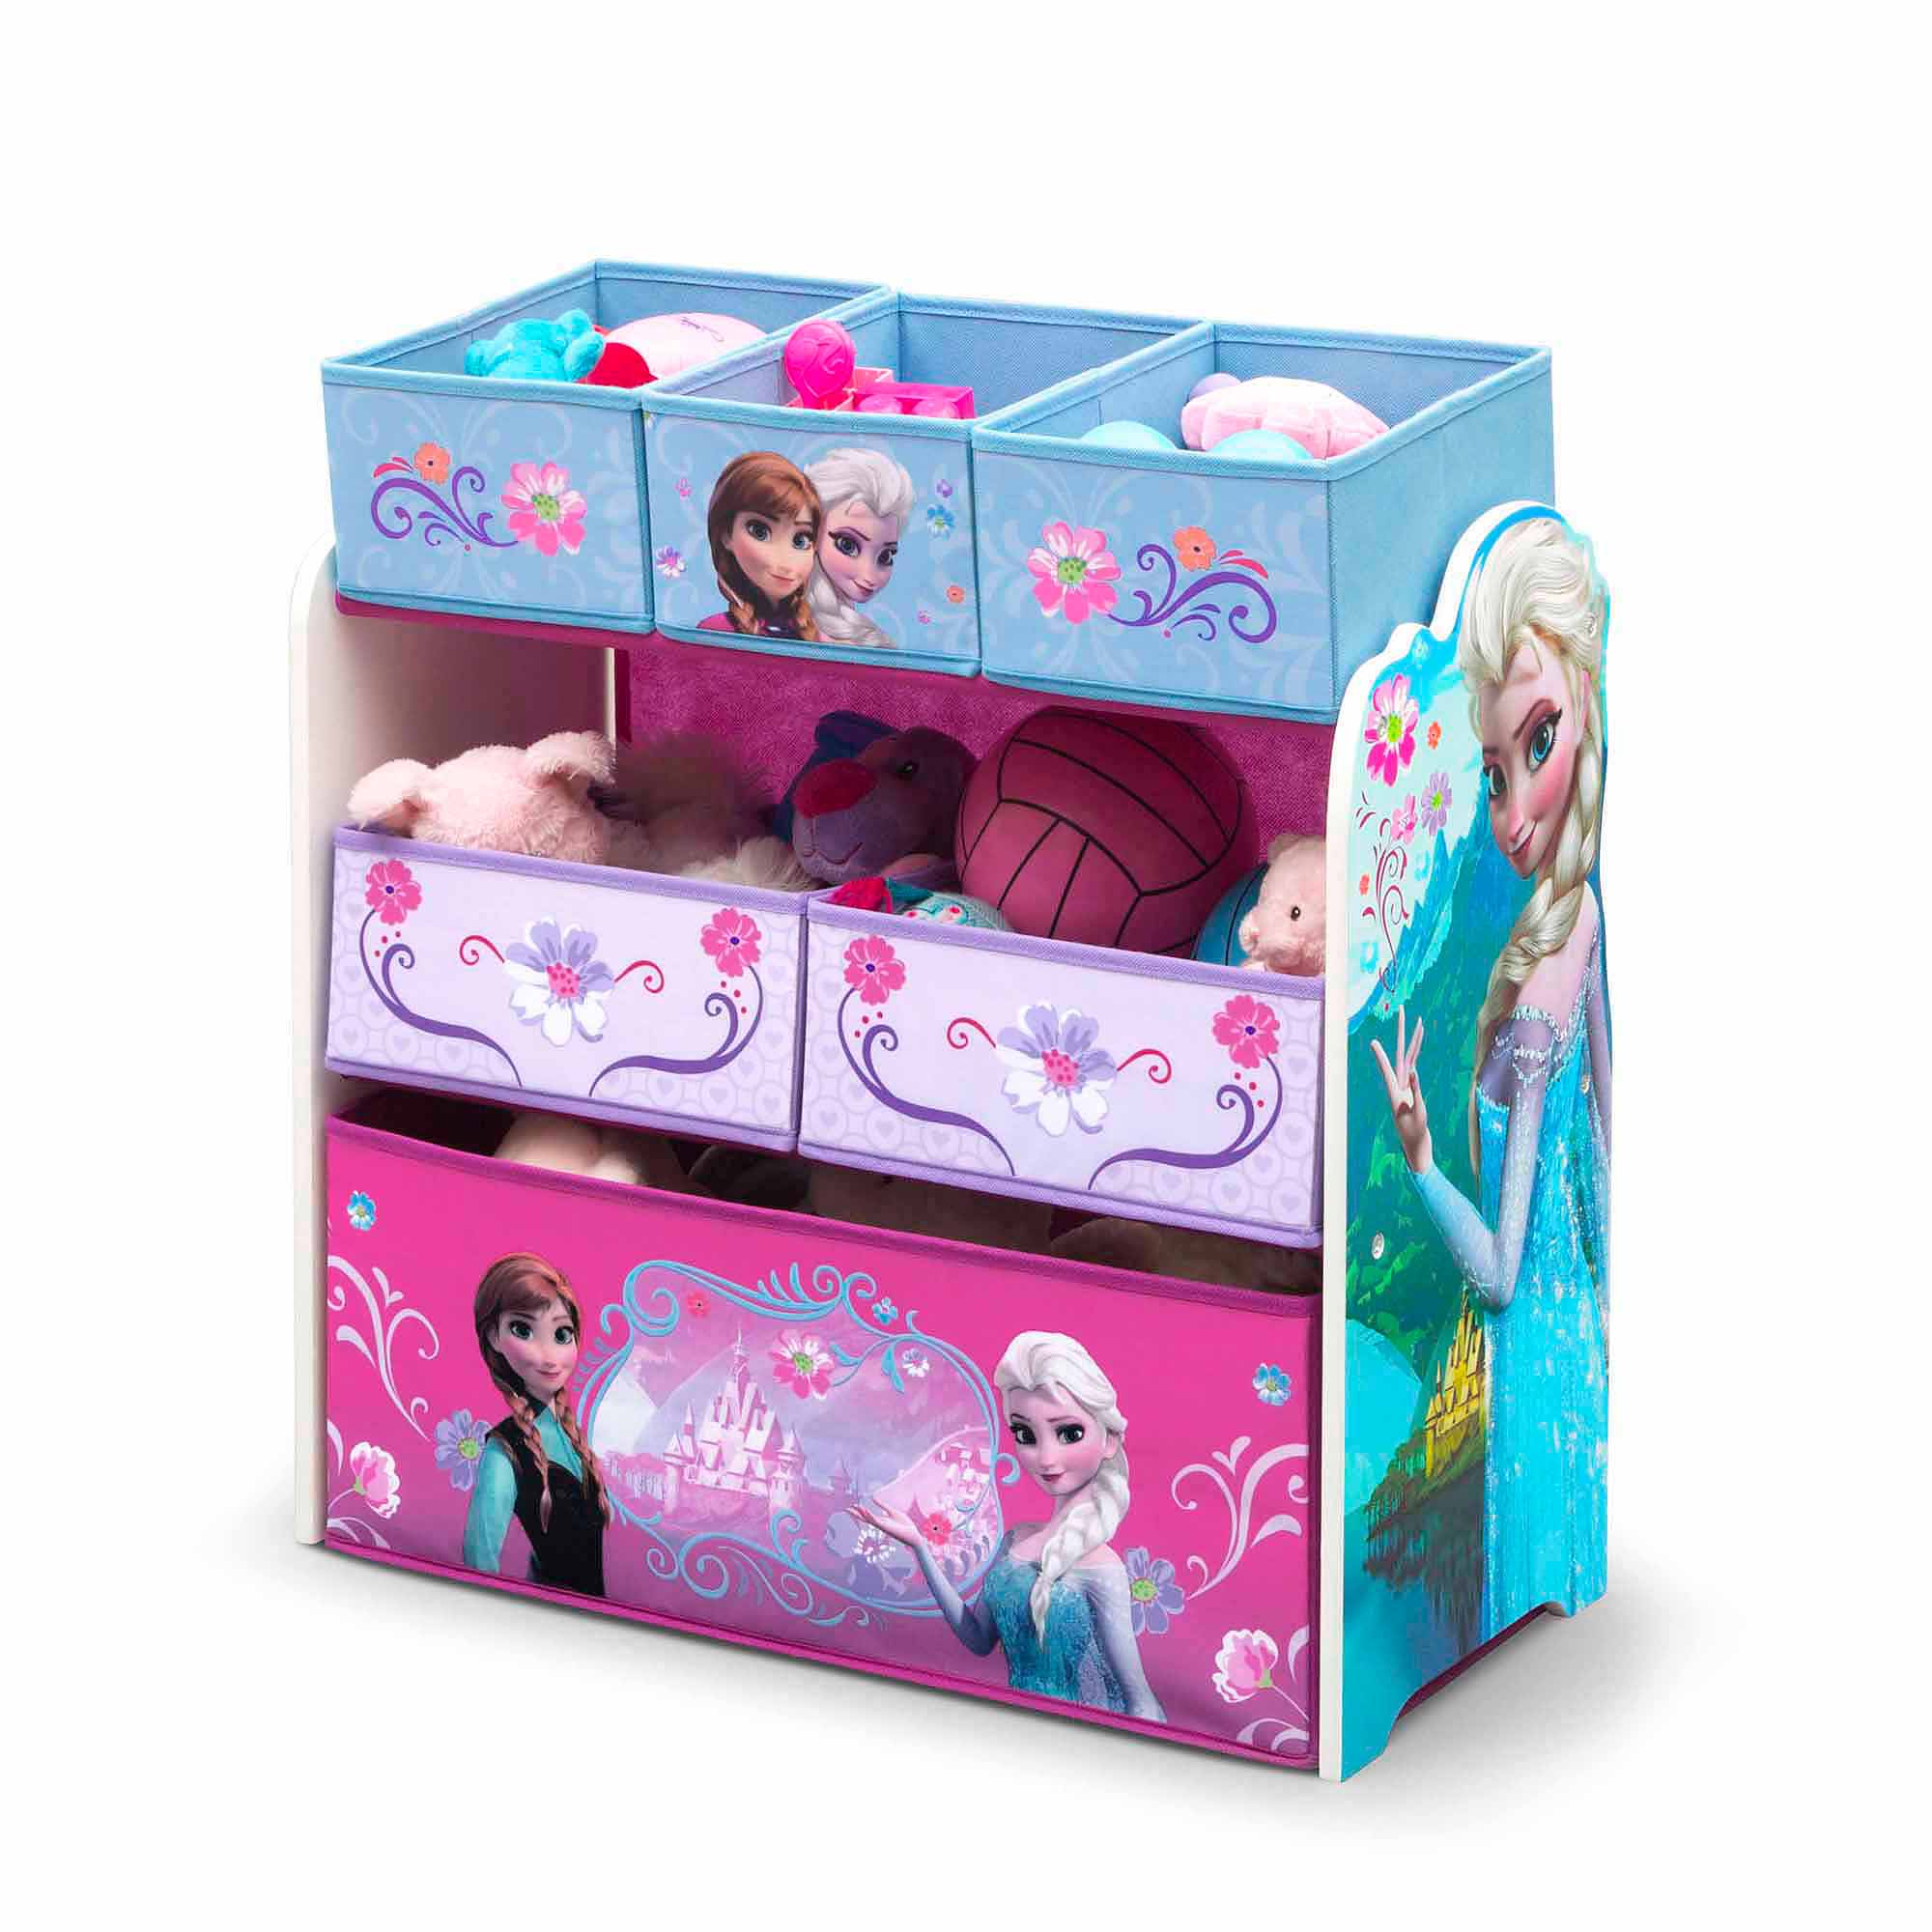 Lovely Disney Frozen Multi Bin Toy Organizer By Delta Children   Walmart.com